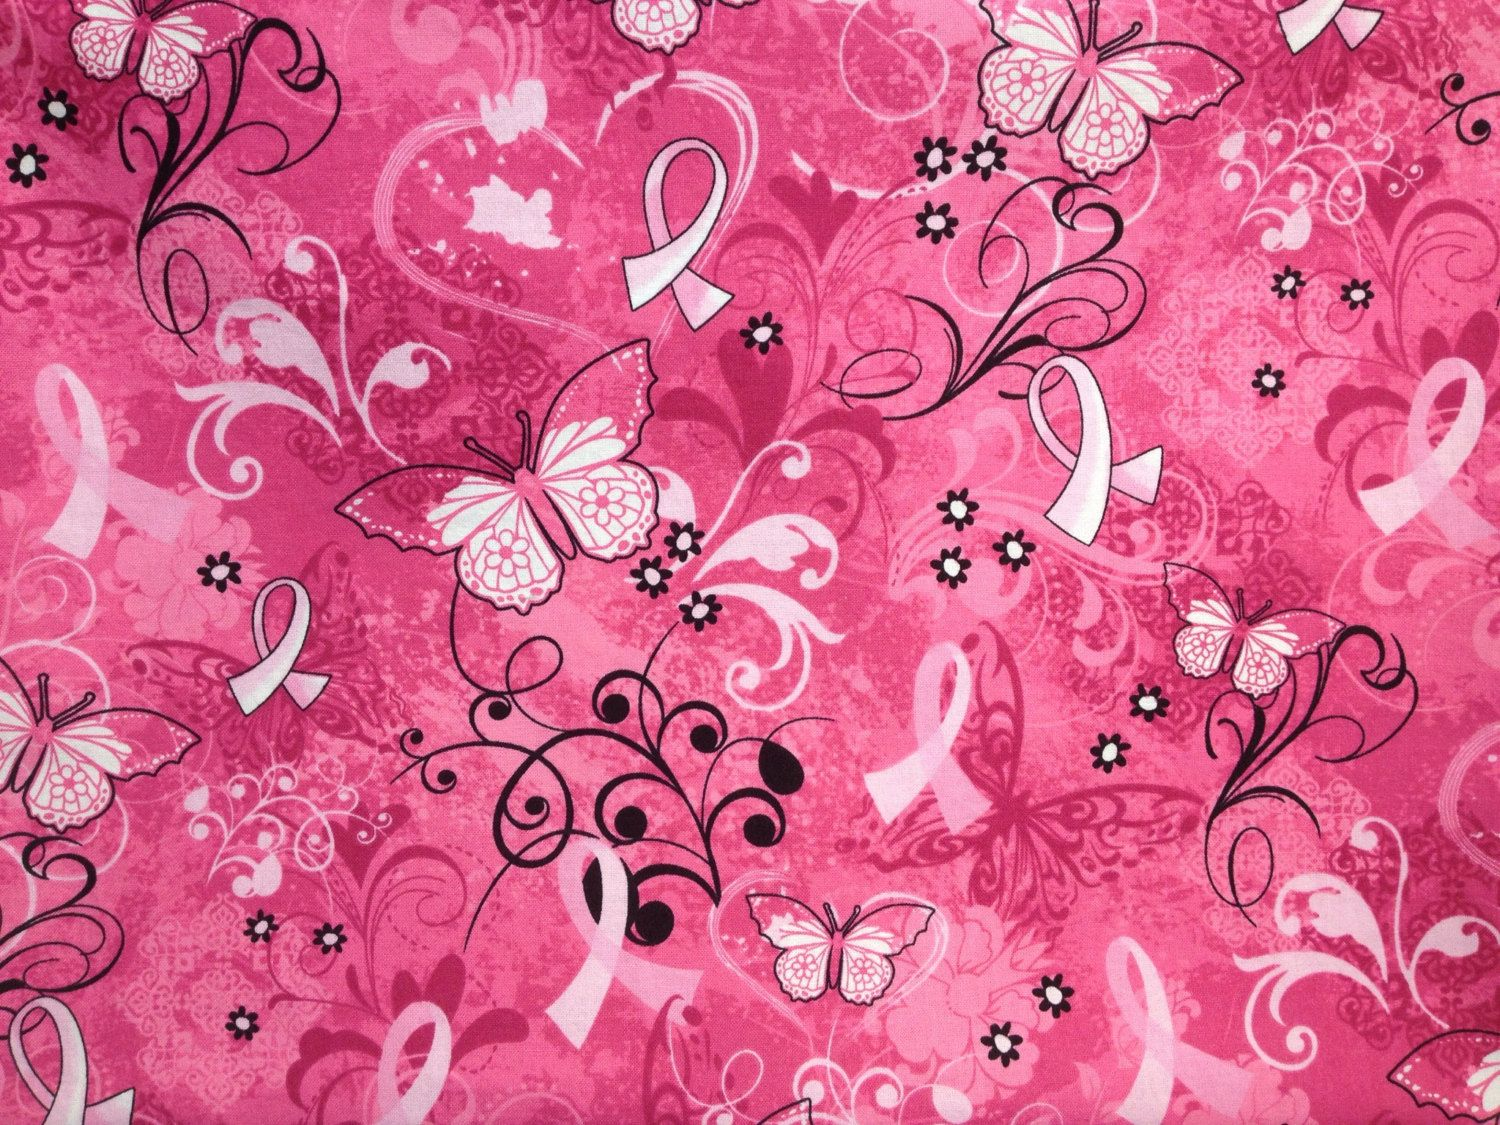 Travel pillow case standard or queen pillow case pink ribbon